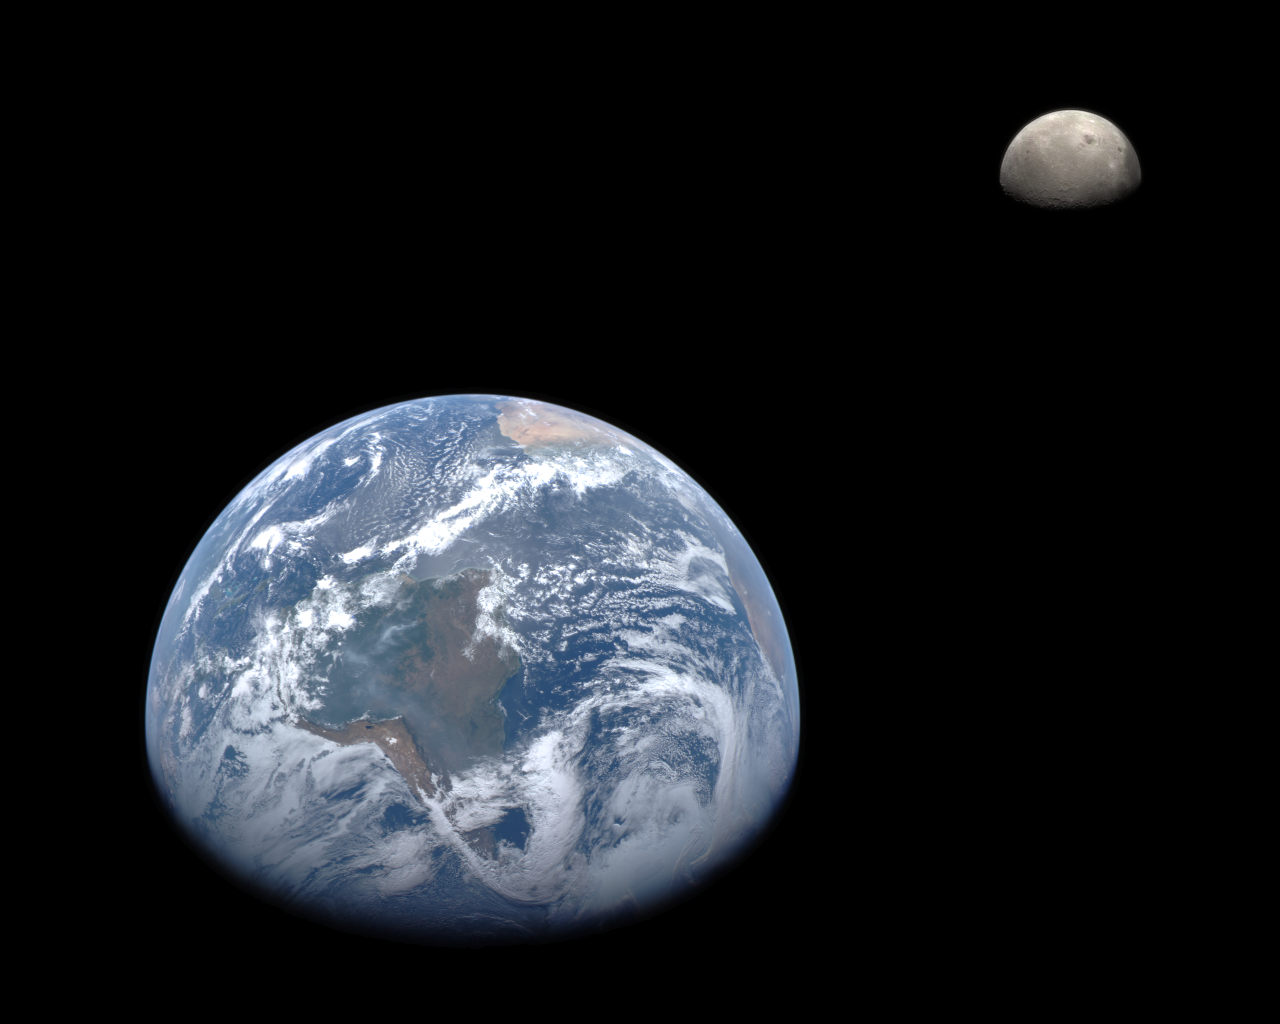 Earth and Moon from MESSENGER   Flickr - Photo Sharing!